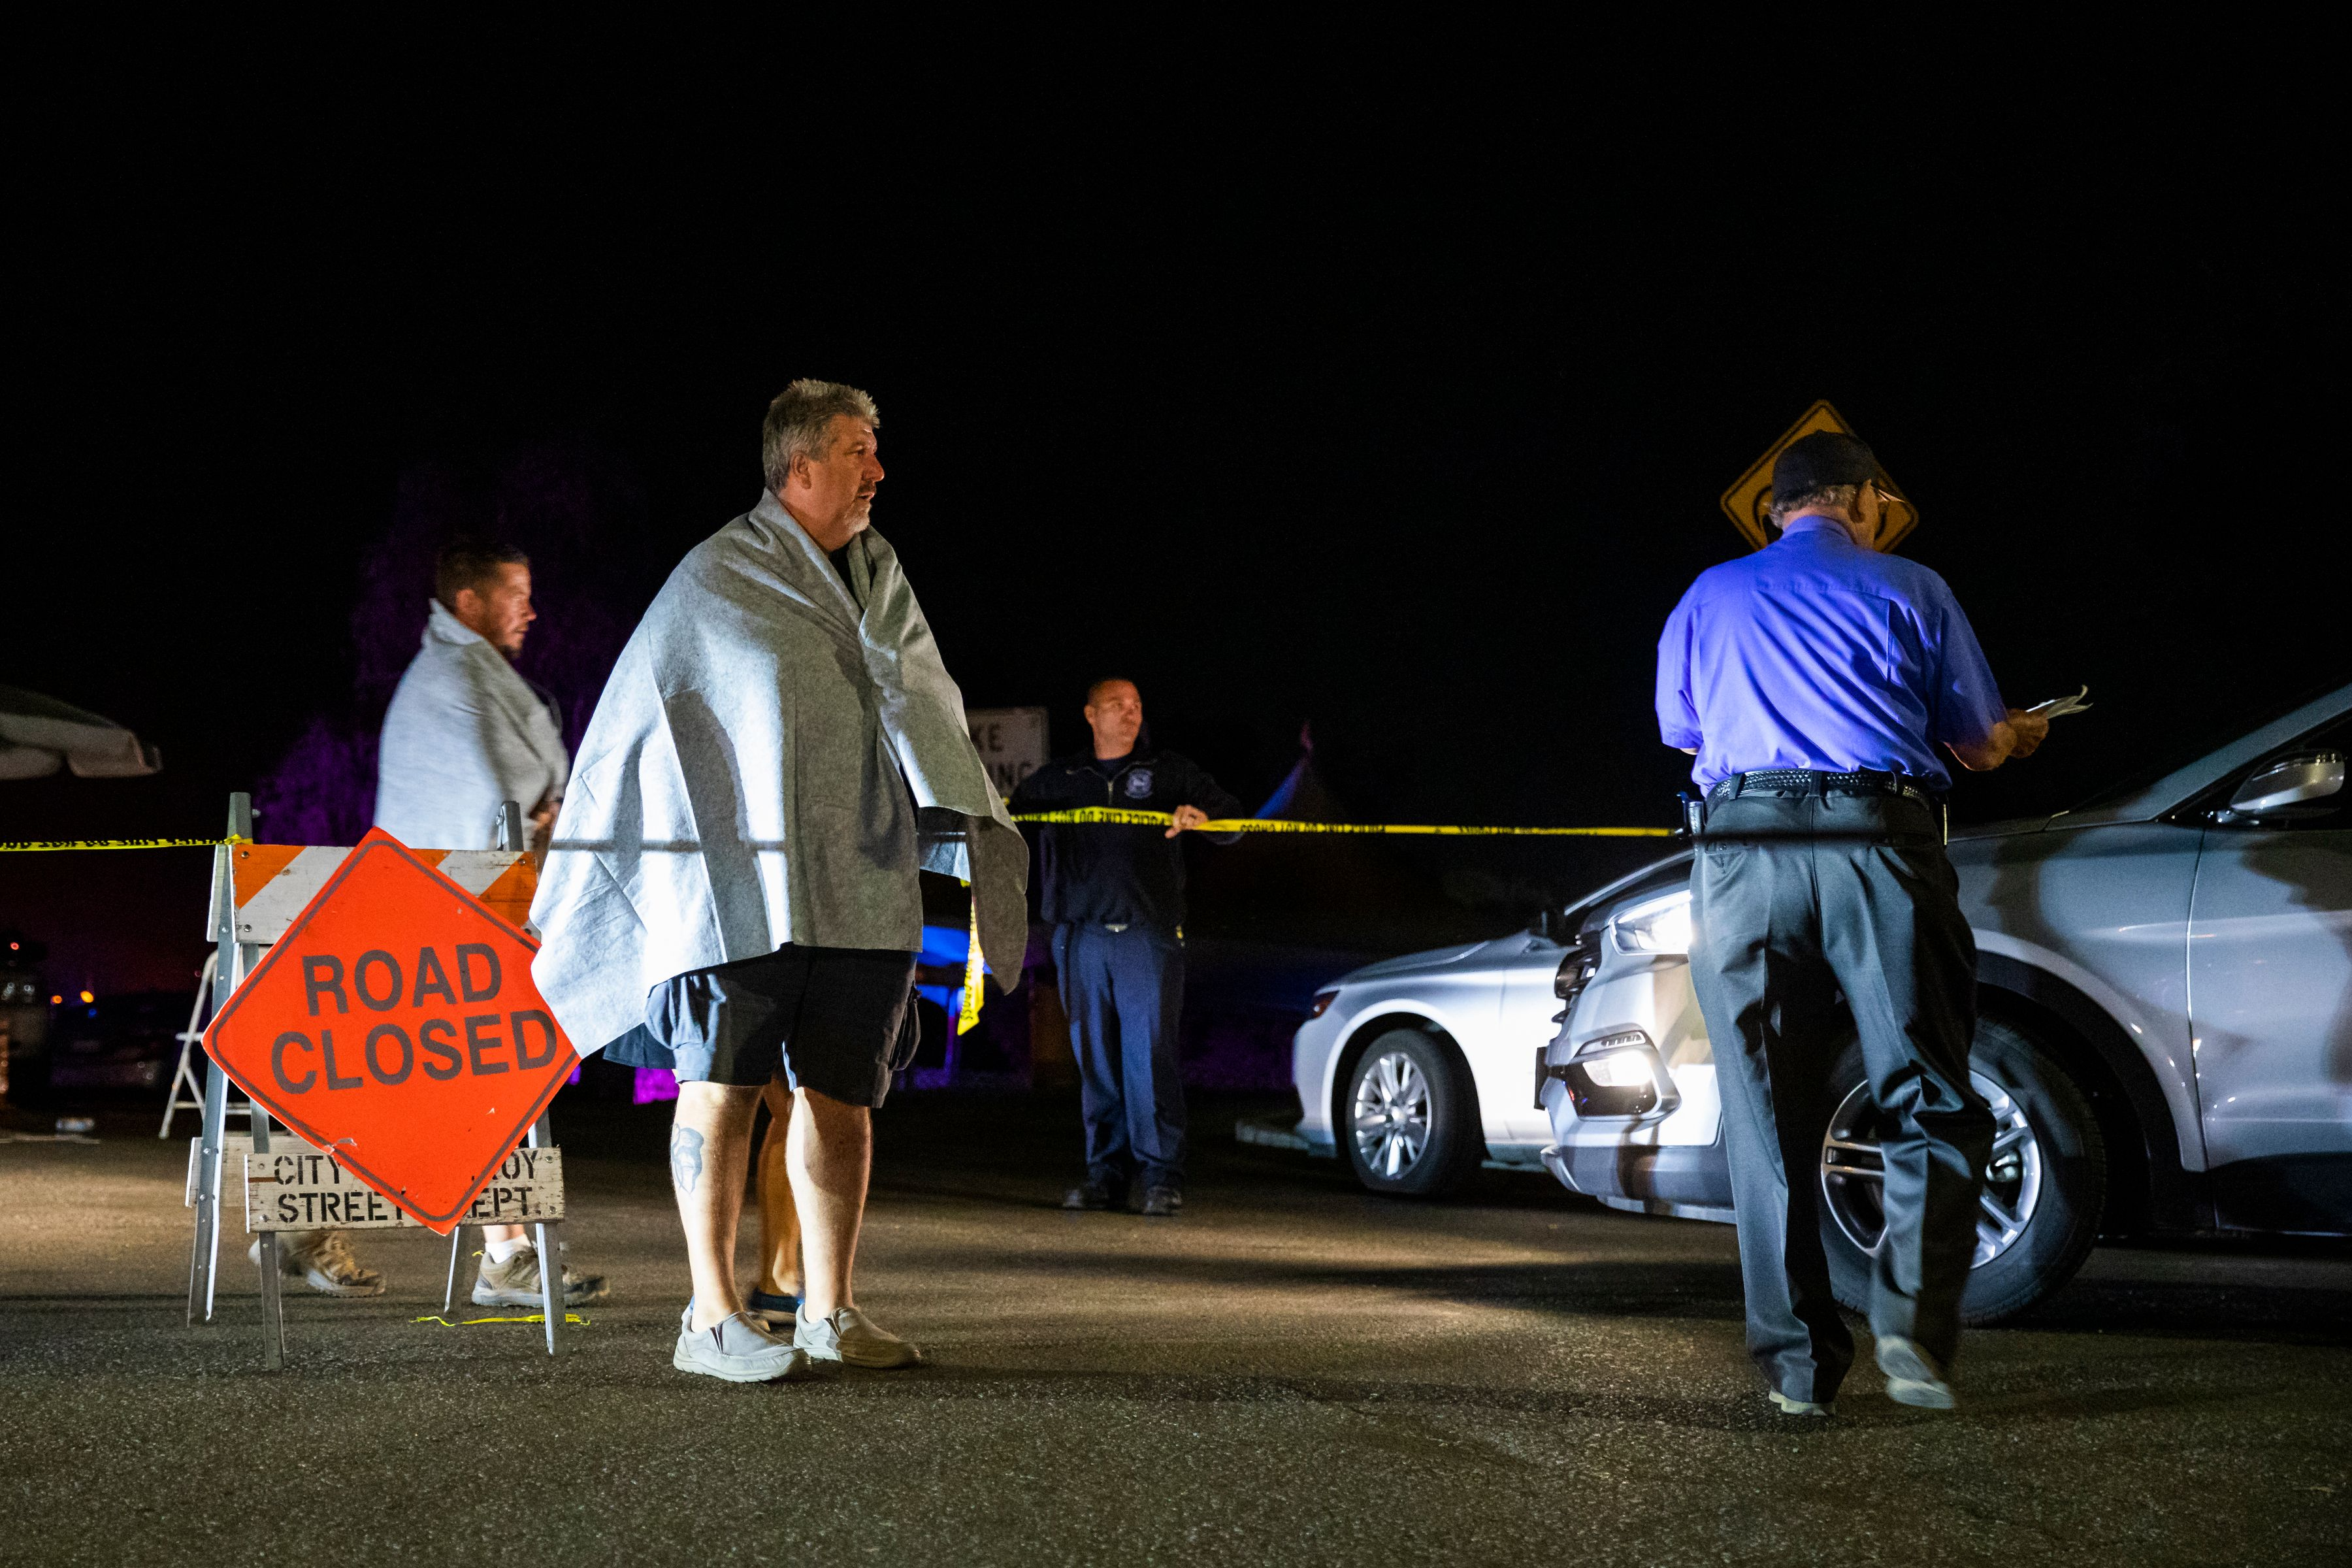 Edward Jacobucci, an evacuee, leaves the scene of the deadly Gilroy Garlic Festival shooting in Gilroy, California on July 28, 2019. (PHILIP PACHECO/AFP/Getty Images)